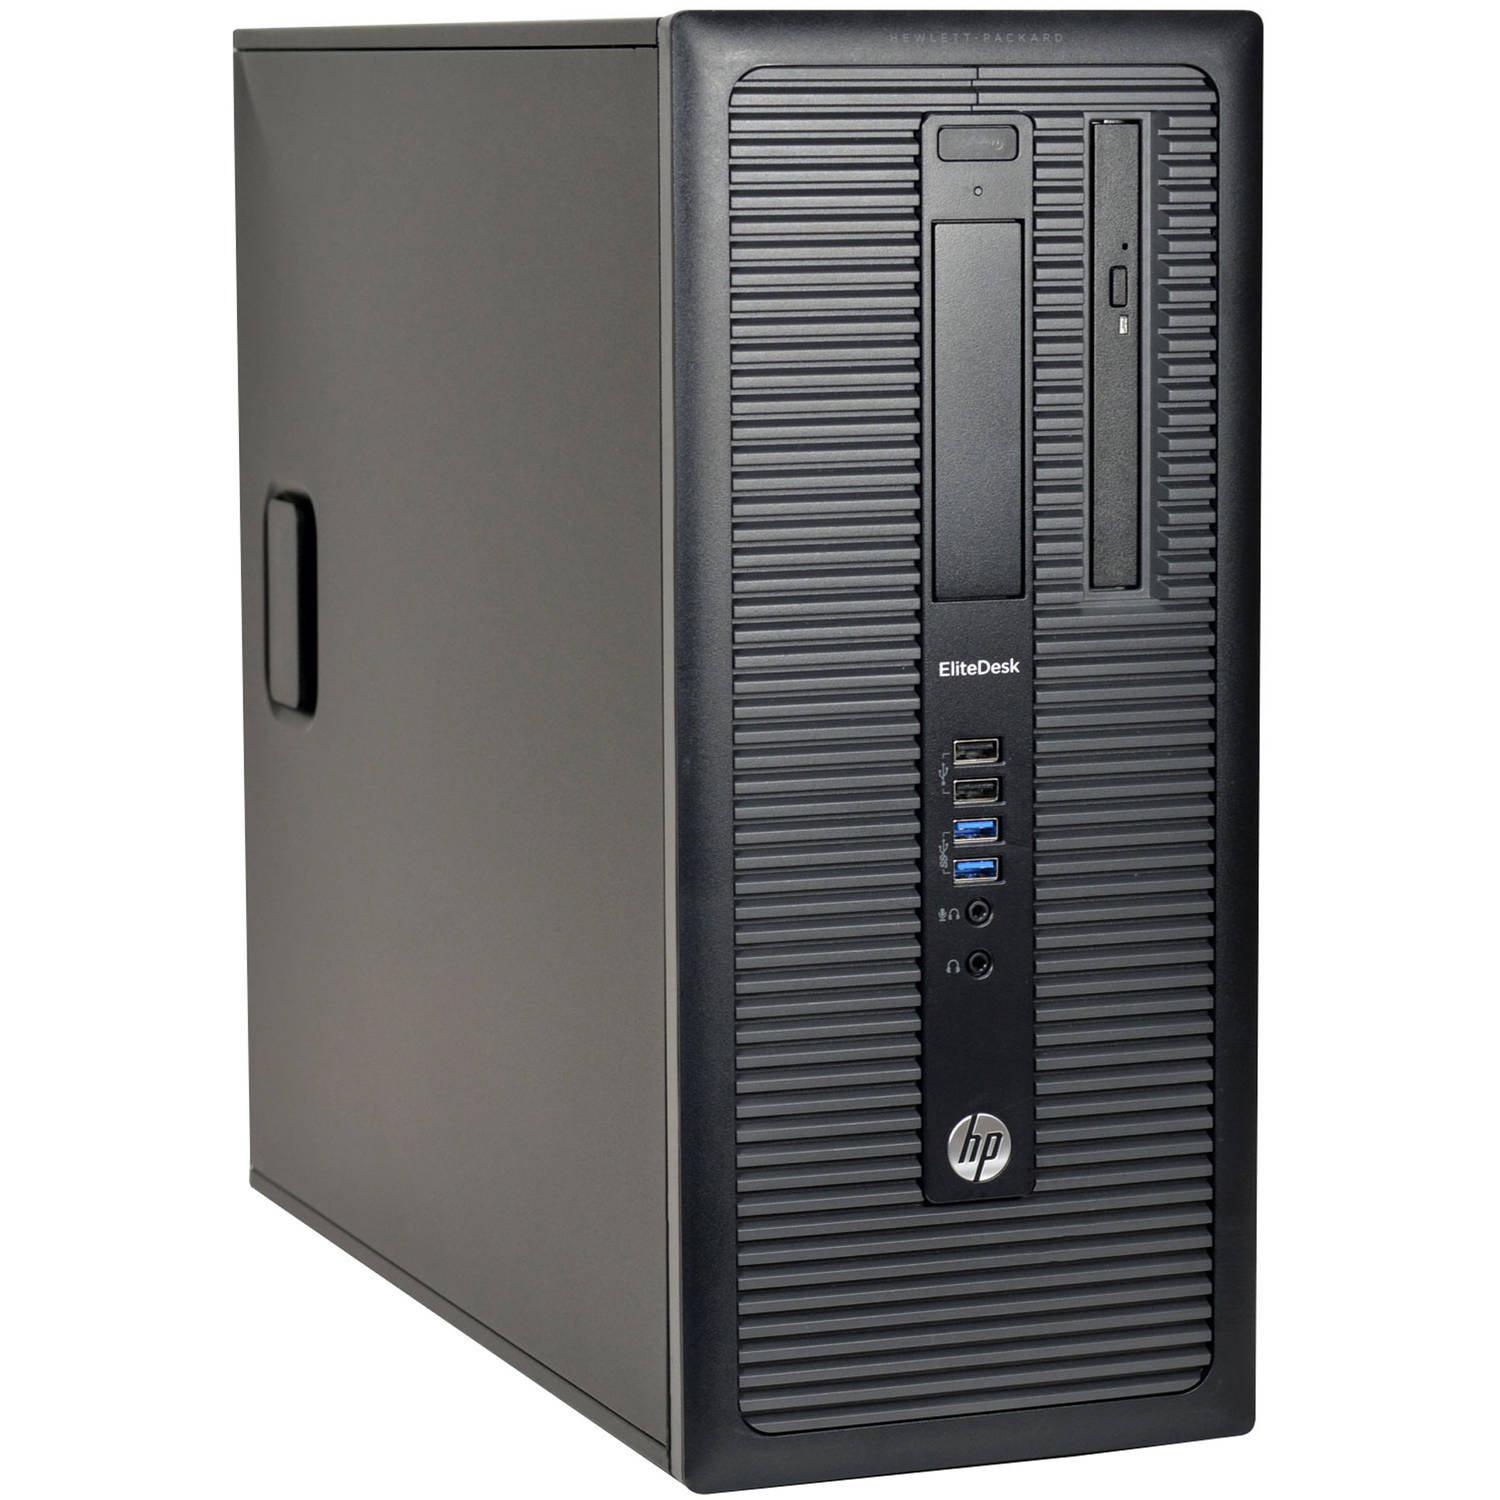 Refurbished HP EliteDesk 800 G1-T Desktop PC with Intel Core i7-4770 Processor, 16GB Memory, 2TB Hard Drive and Windows 10 Pro (Monitor Not Included)